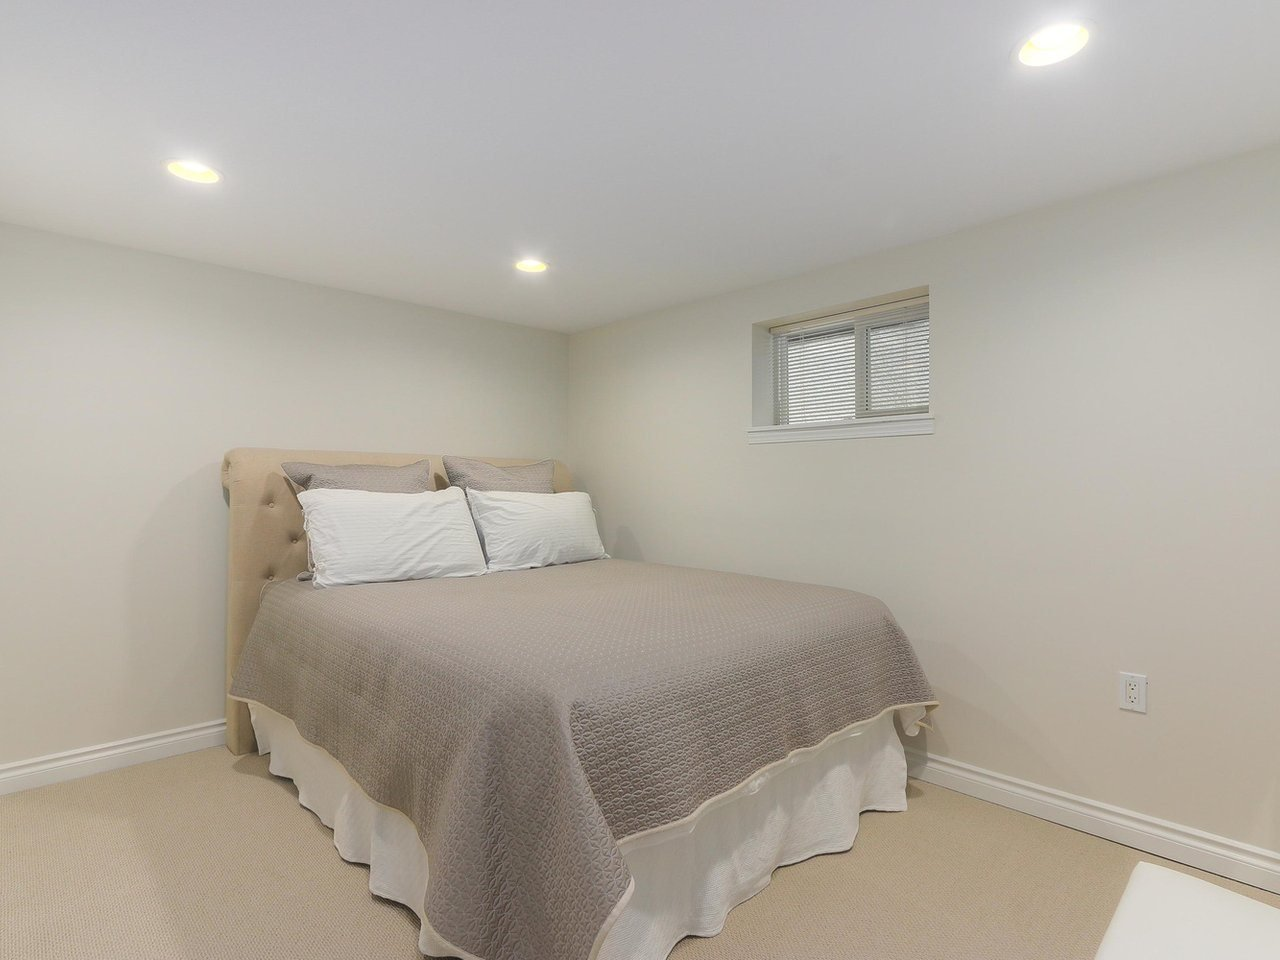 """Photo 19: Photos: 2610 W 10TH Avenue in Vancouver: Kitsilano House for sale in """"Kitsilano"""" (Vancouver West)  : MLS®# R2471992"""